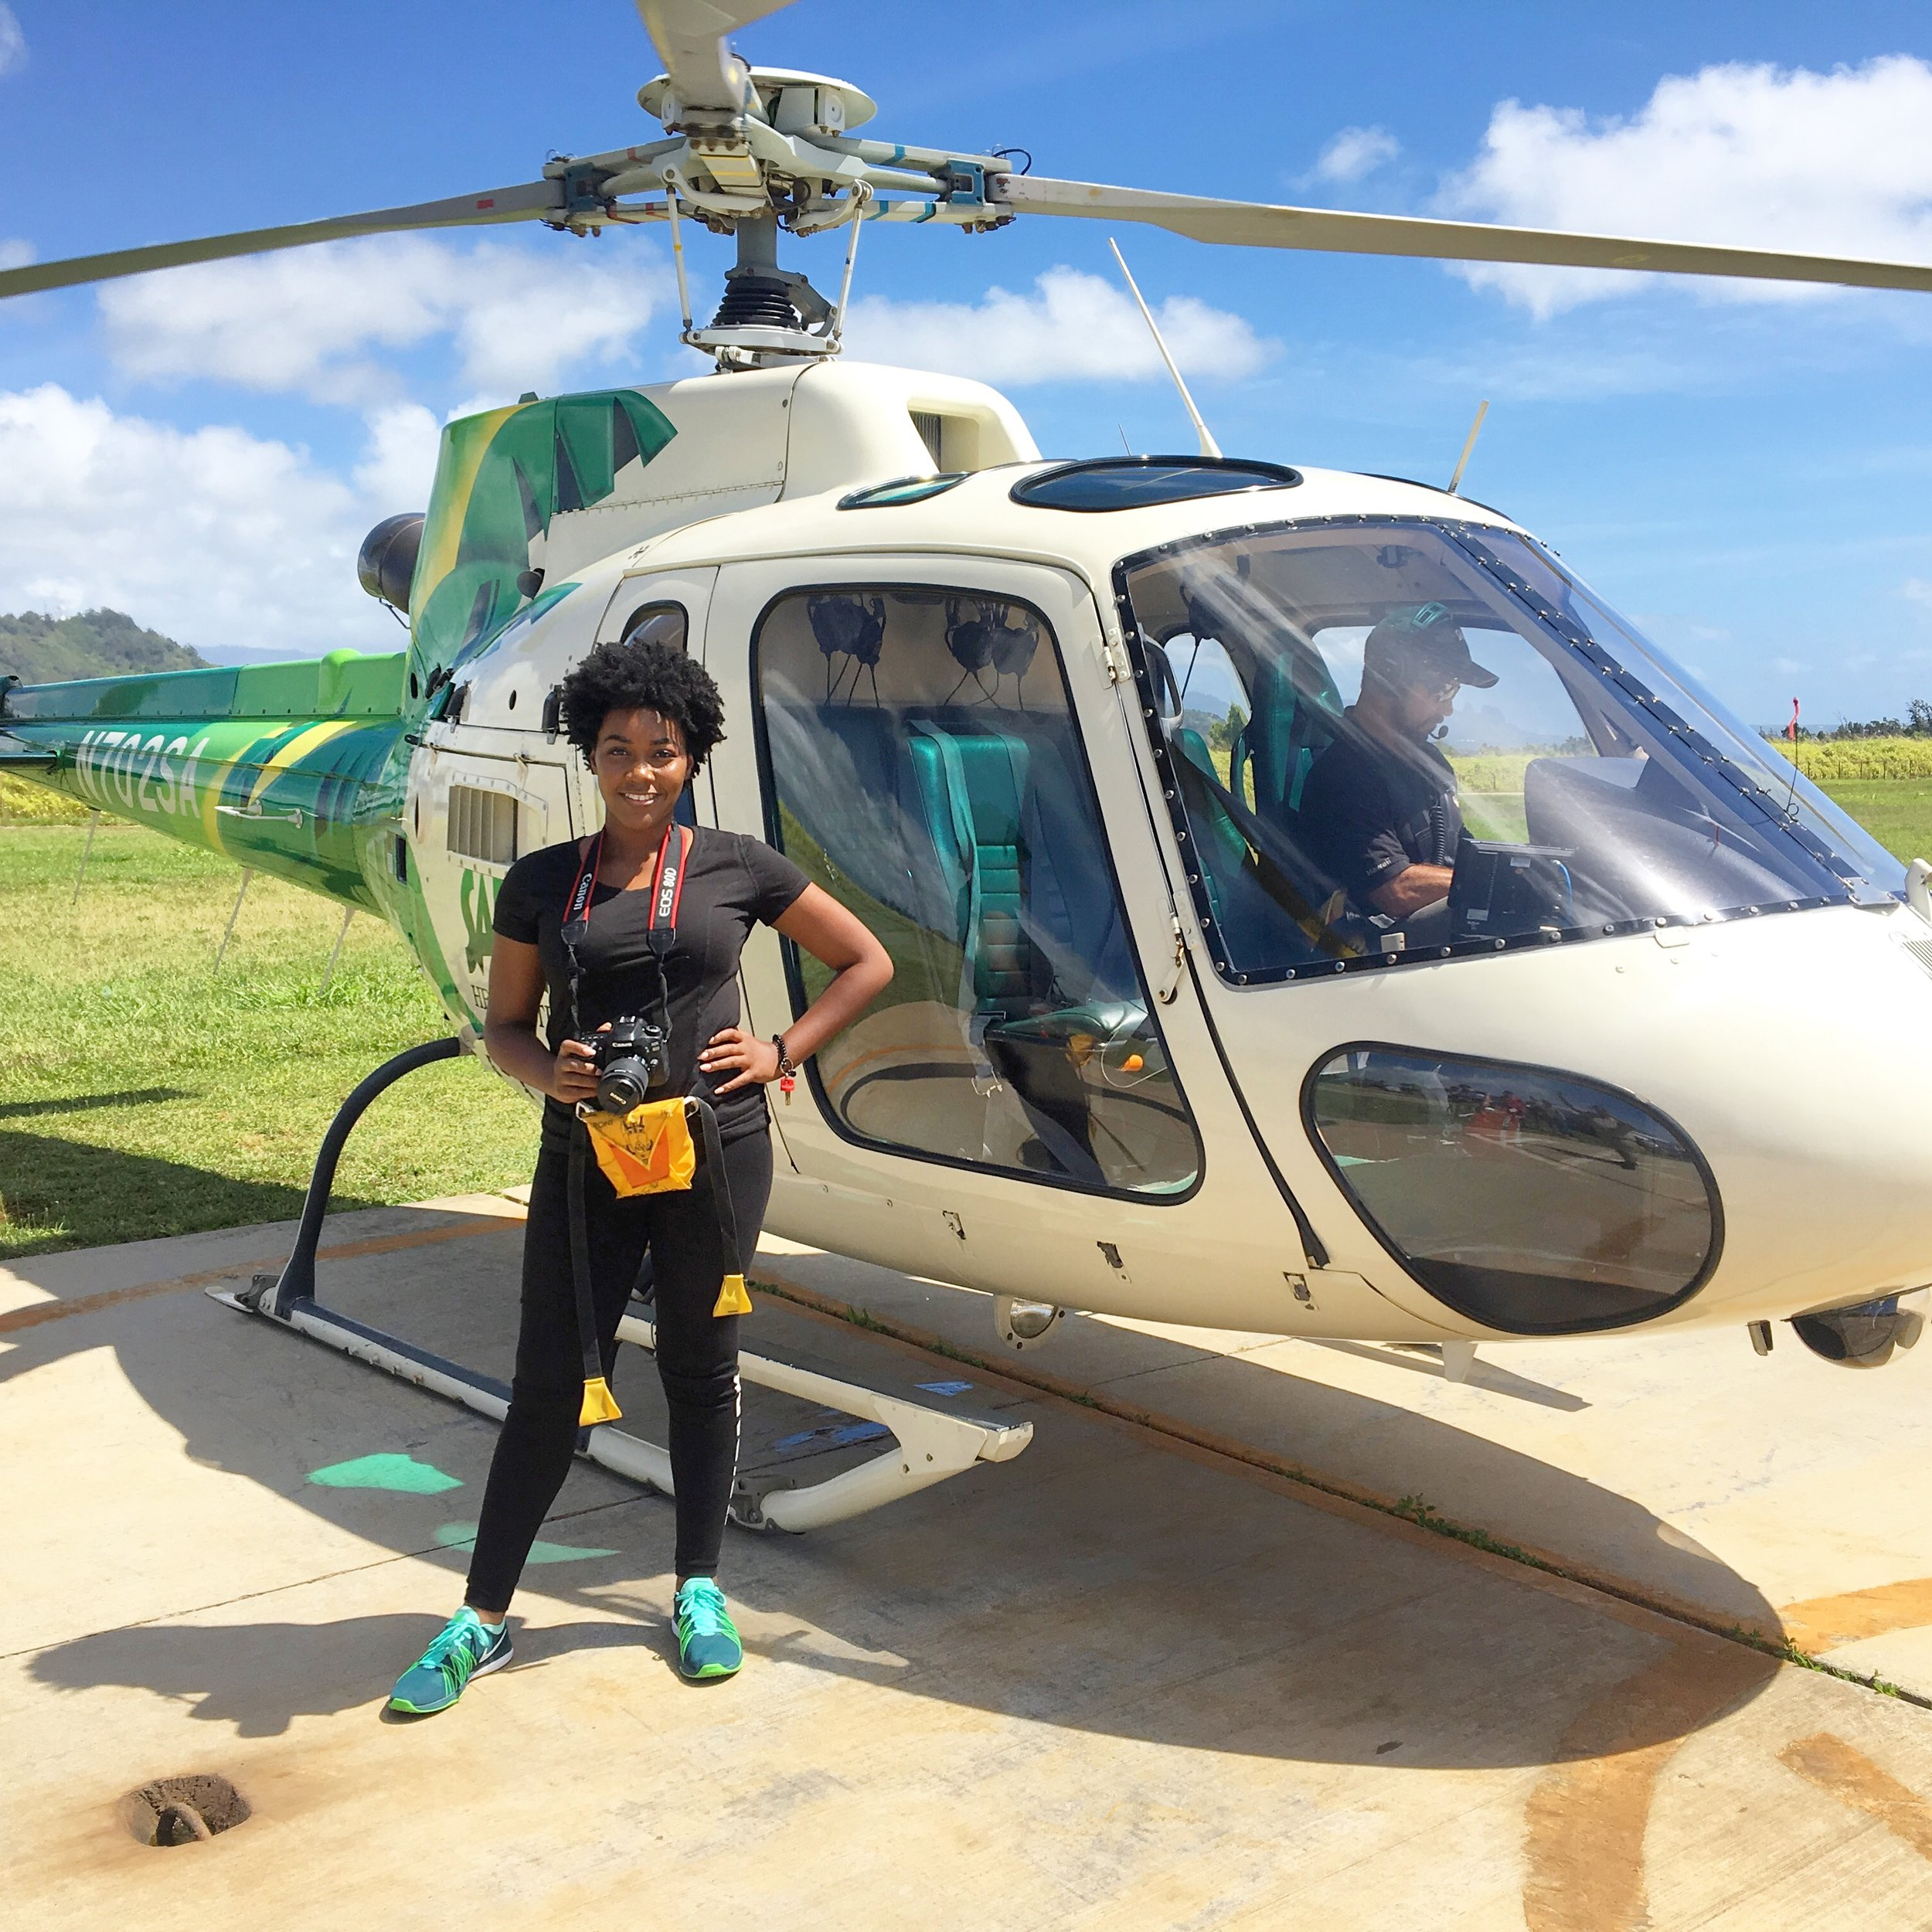 Me next to the helicopter after our tour with my camera. I got so many amazing photos!